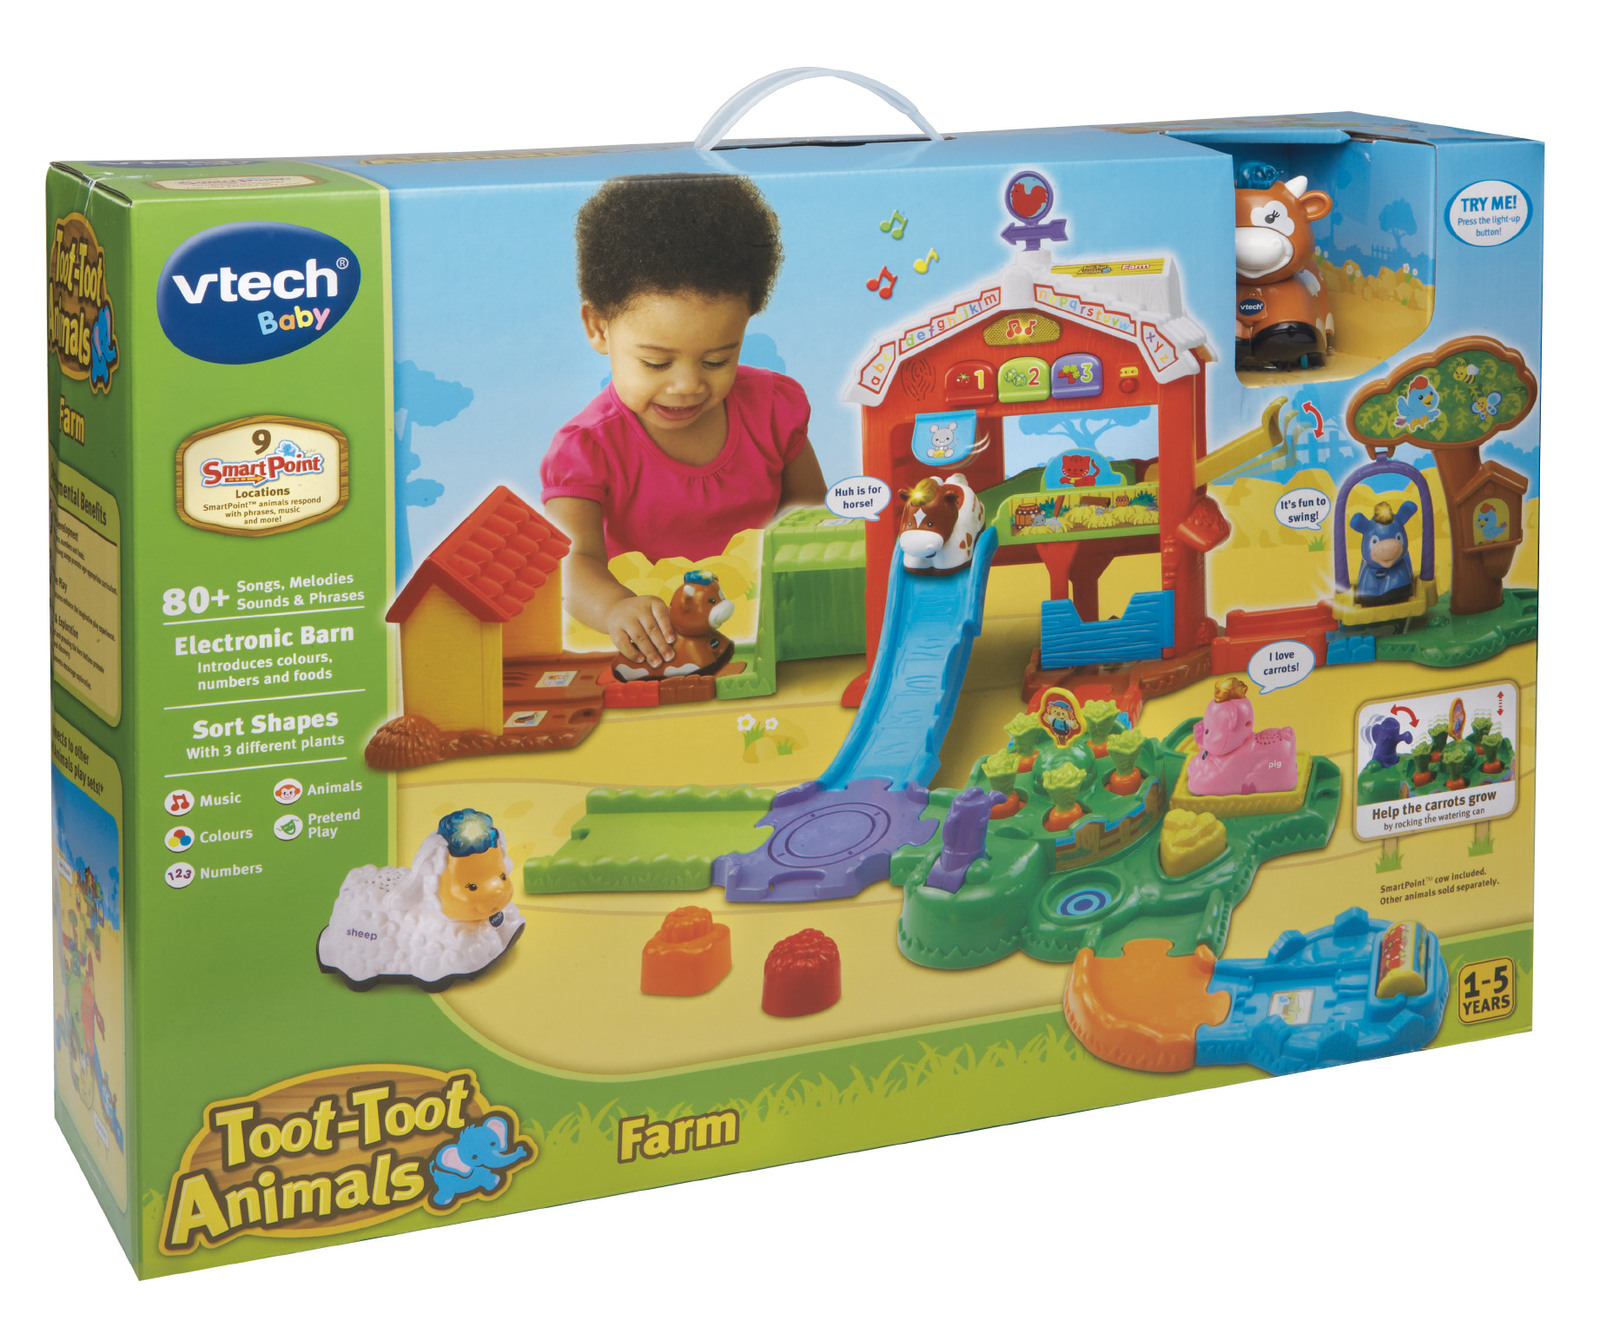 Vtech Toot Toot Animals Farm Toy